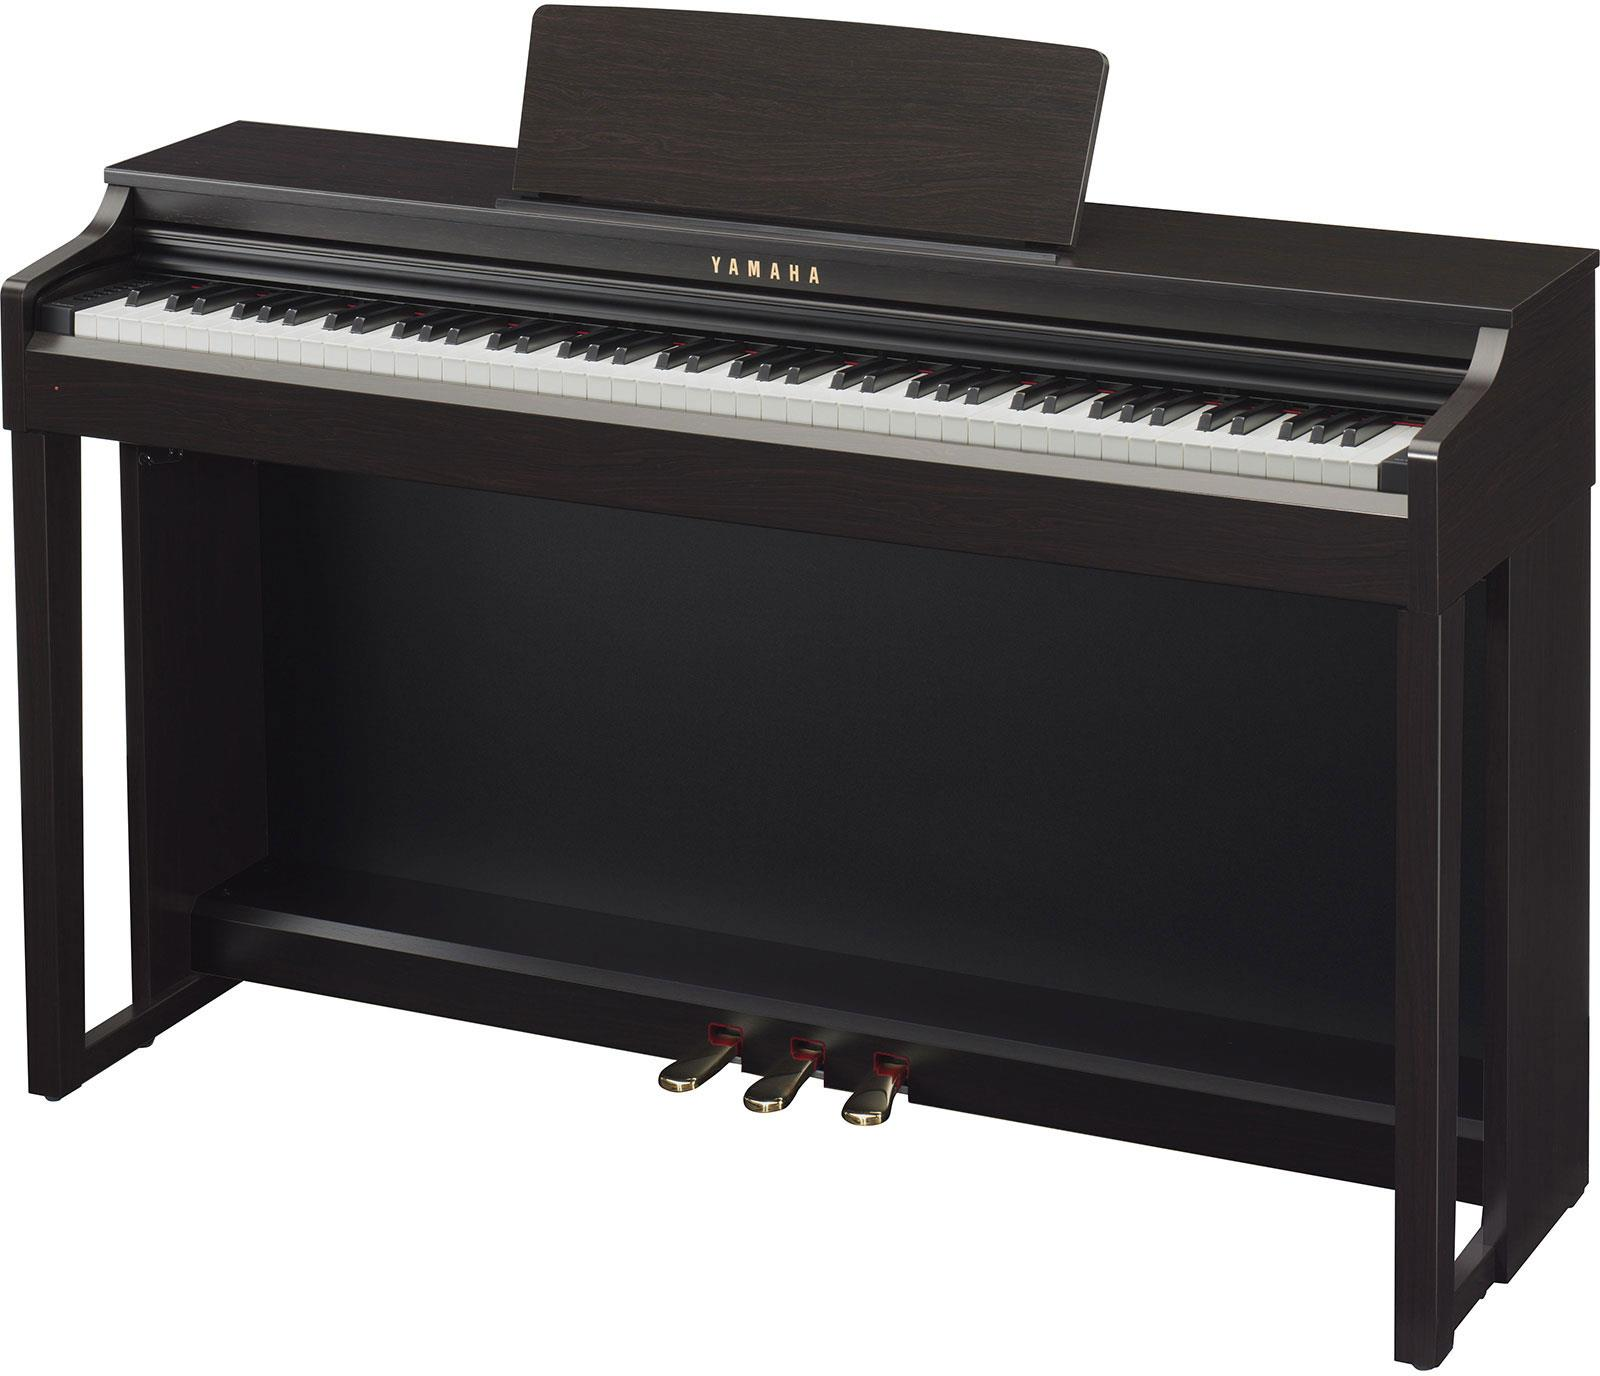 Yamaha clp525r clavinova dark rosewood keymusic for Yamaha digital piano dealers